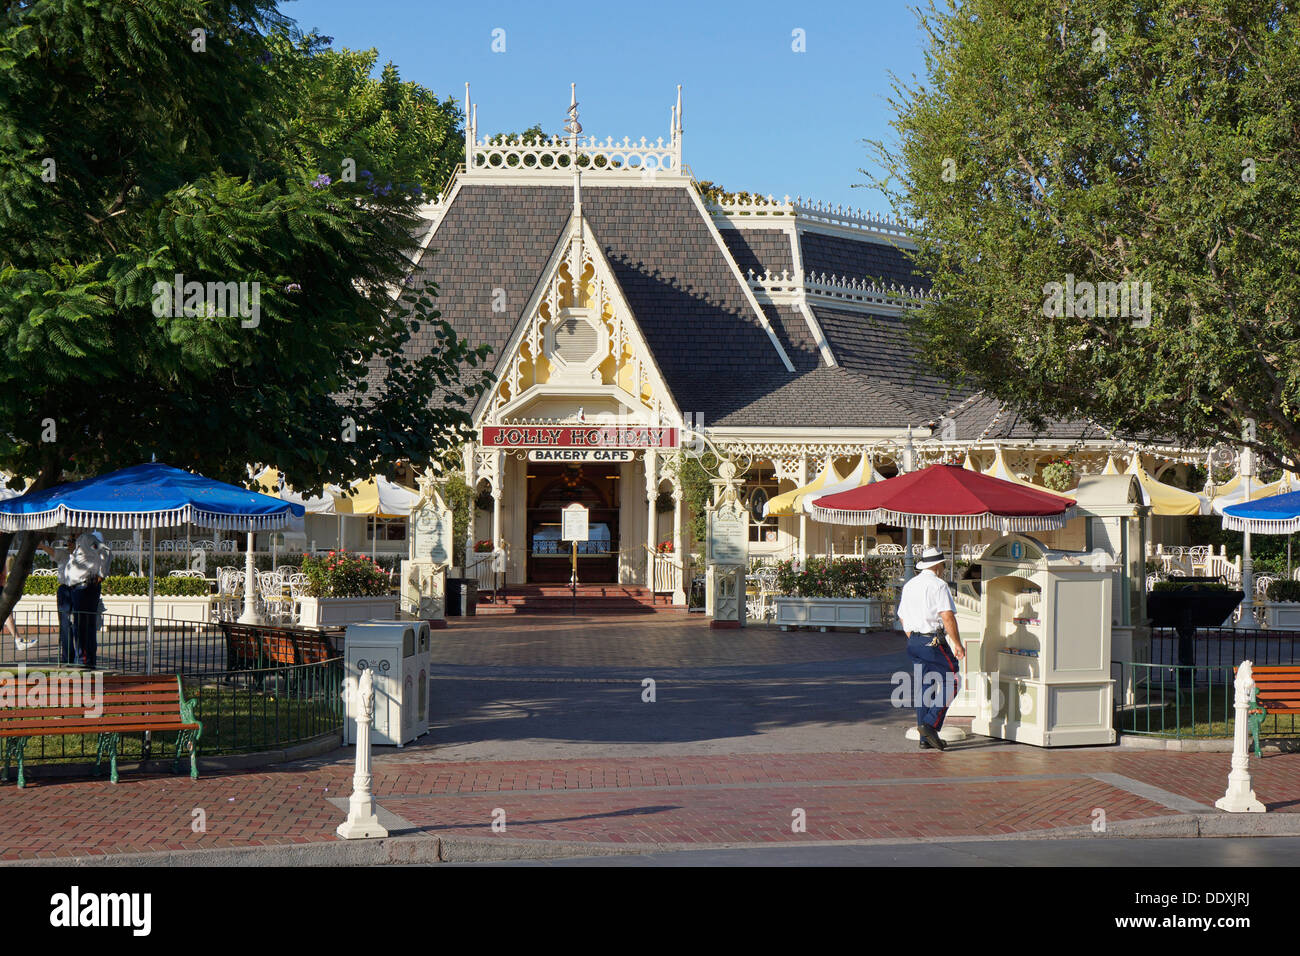 Disneyland, Jolly Holiday, Bakery Cafe on Main Street, Anaheim, California Stock Photo